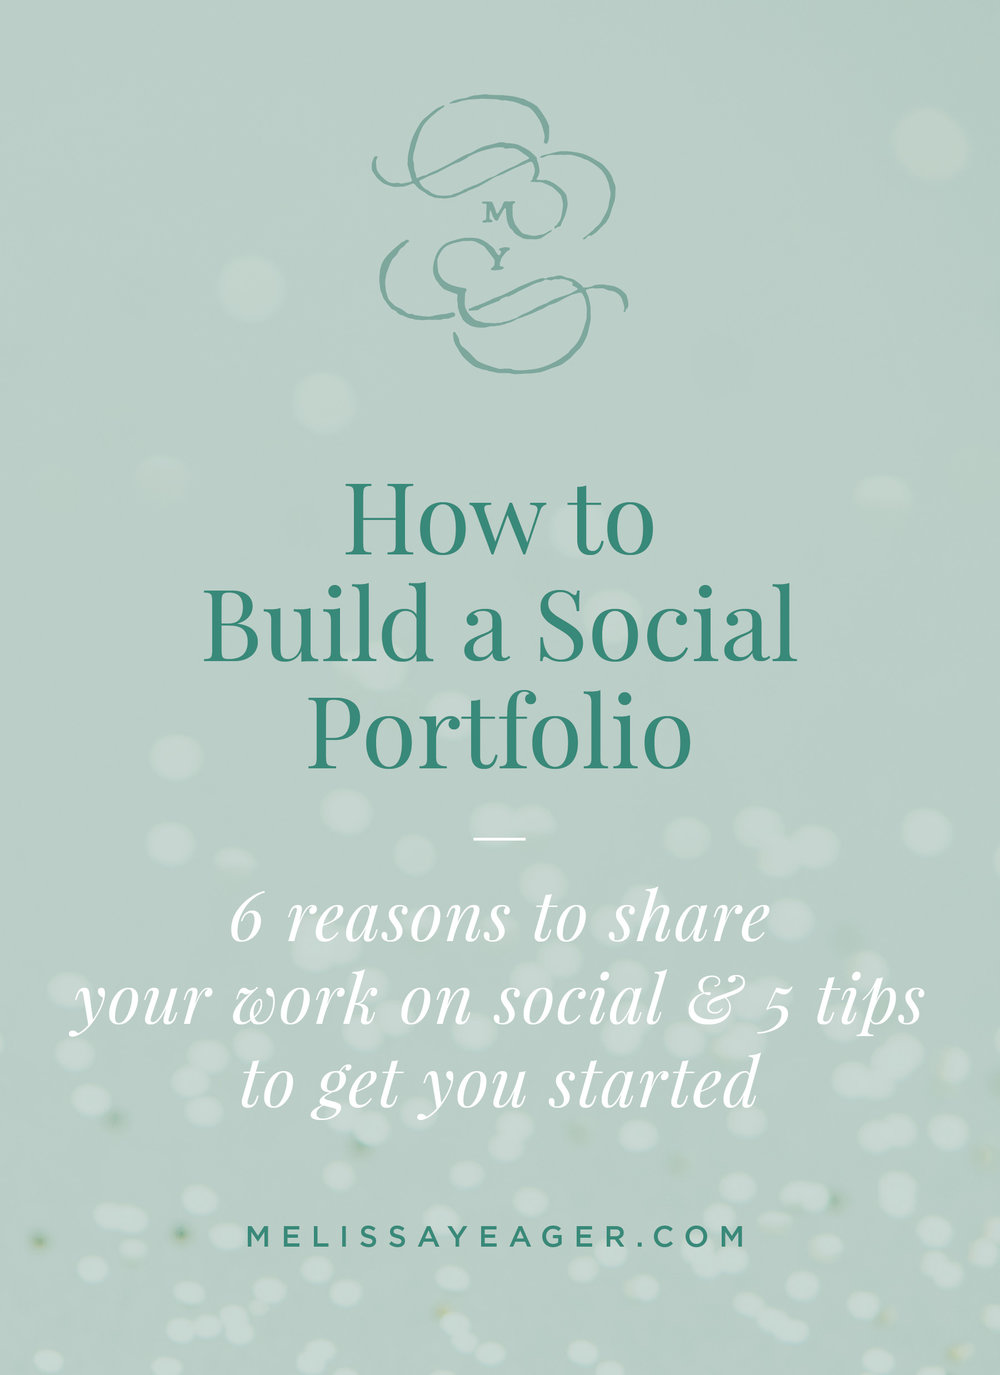 How to Build a Social Portfolio - 6 reasons to share your work on social & 5 tips to get you started